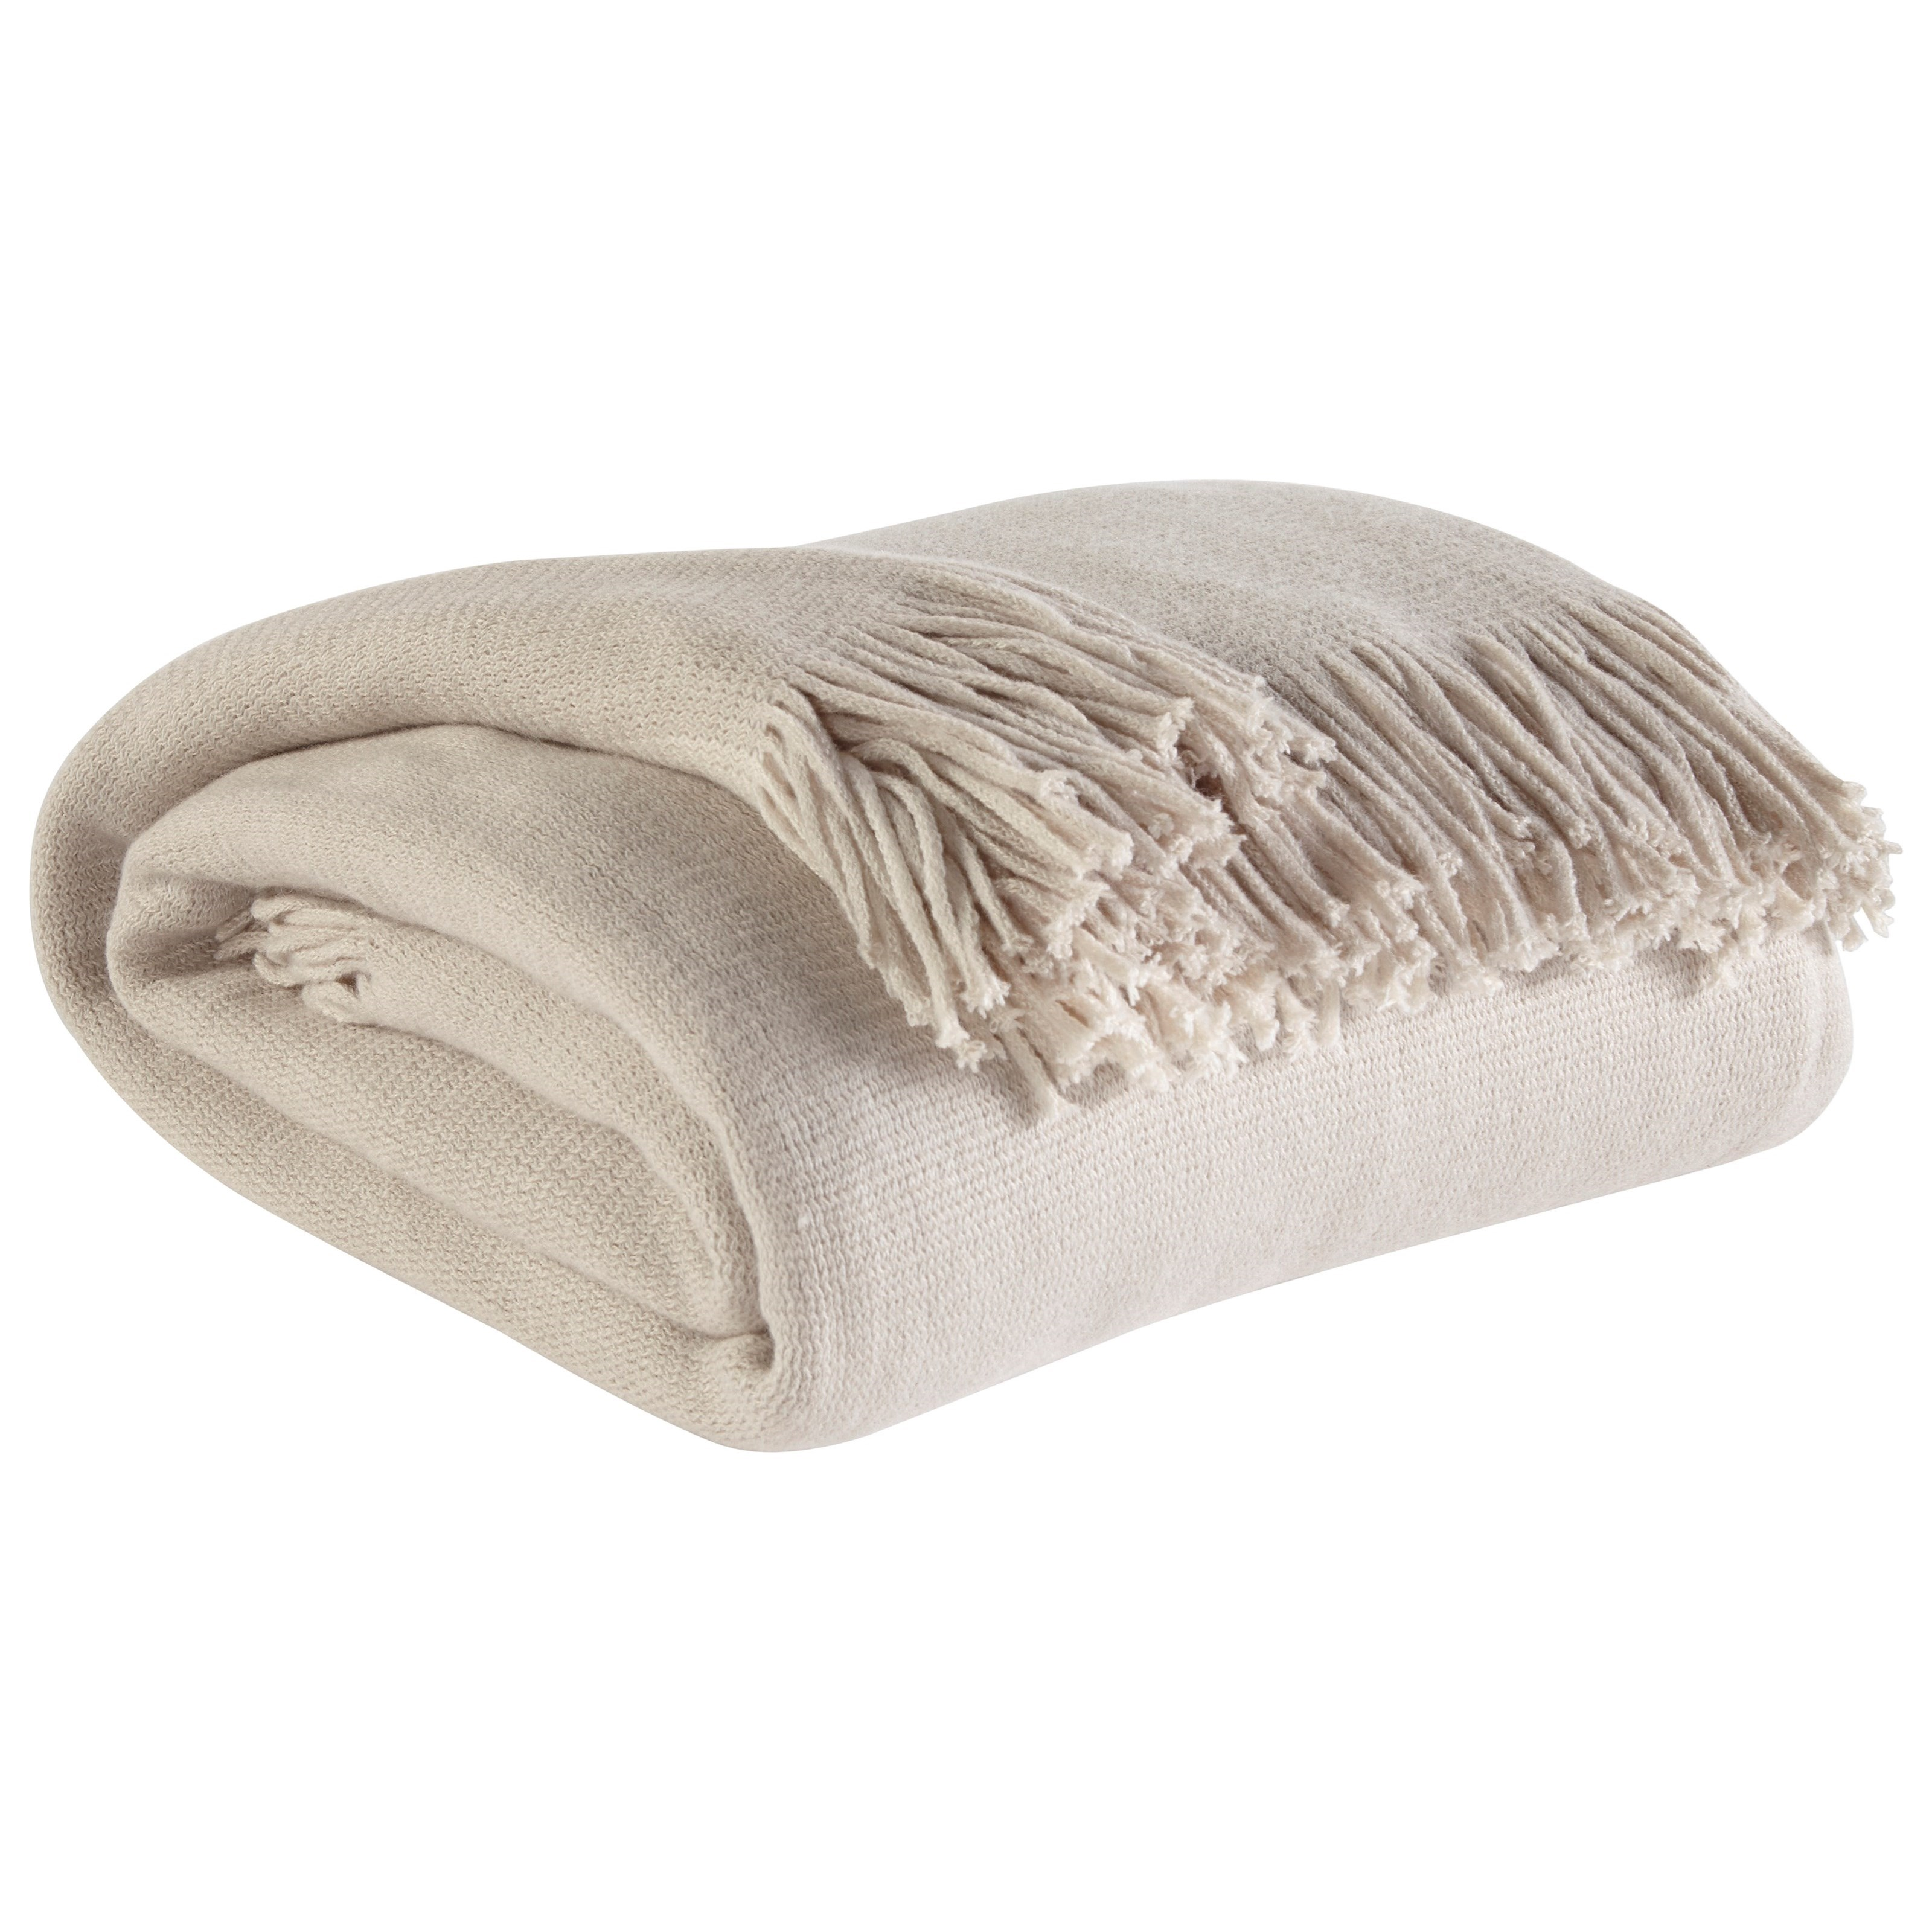 Throws Haiden - Ivory/Taupe Throw by Signature Design by Ashley at Dream Home Interiors